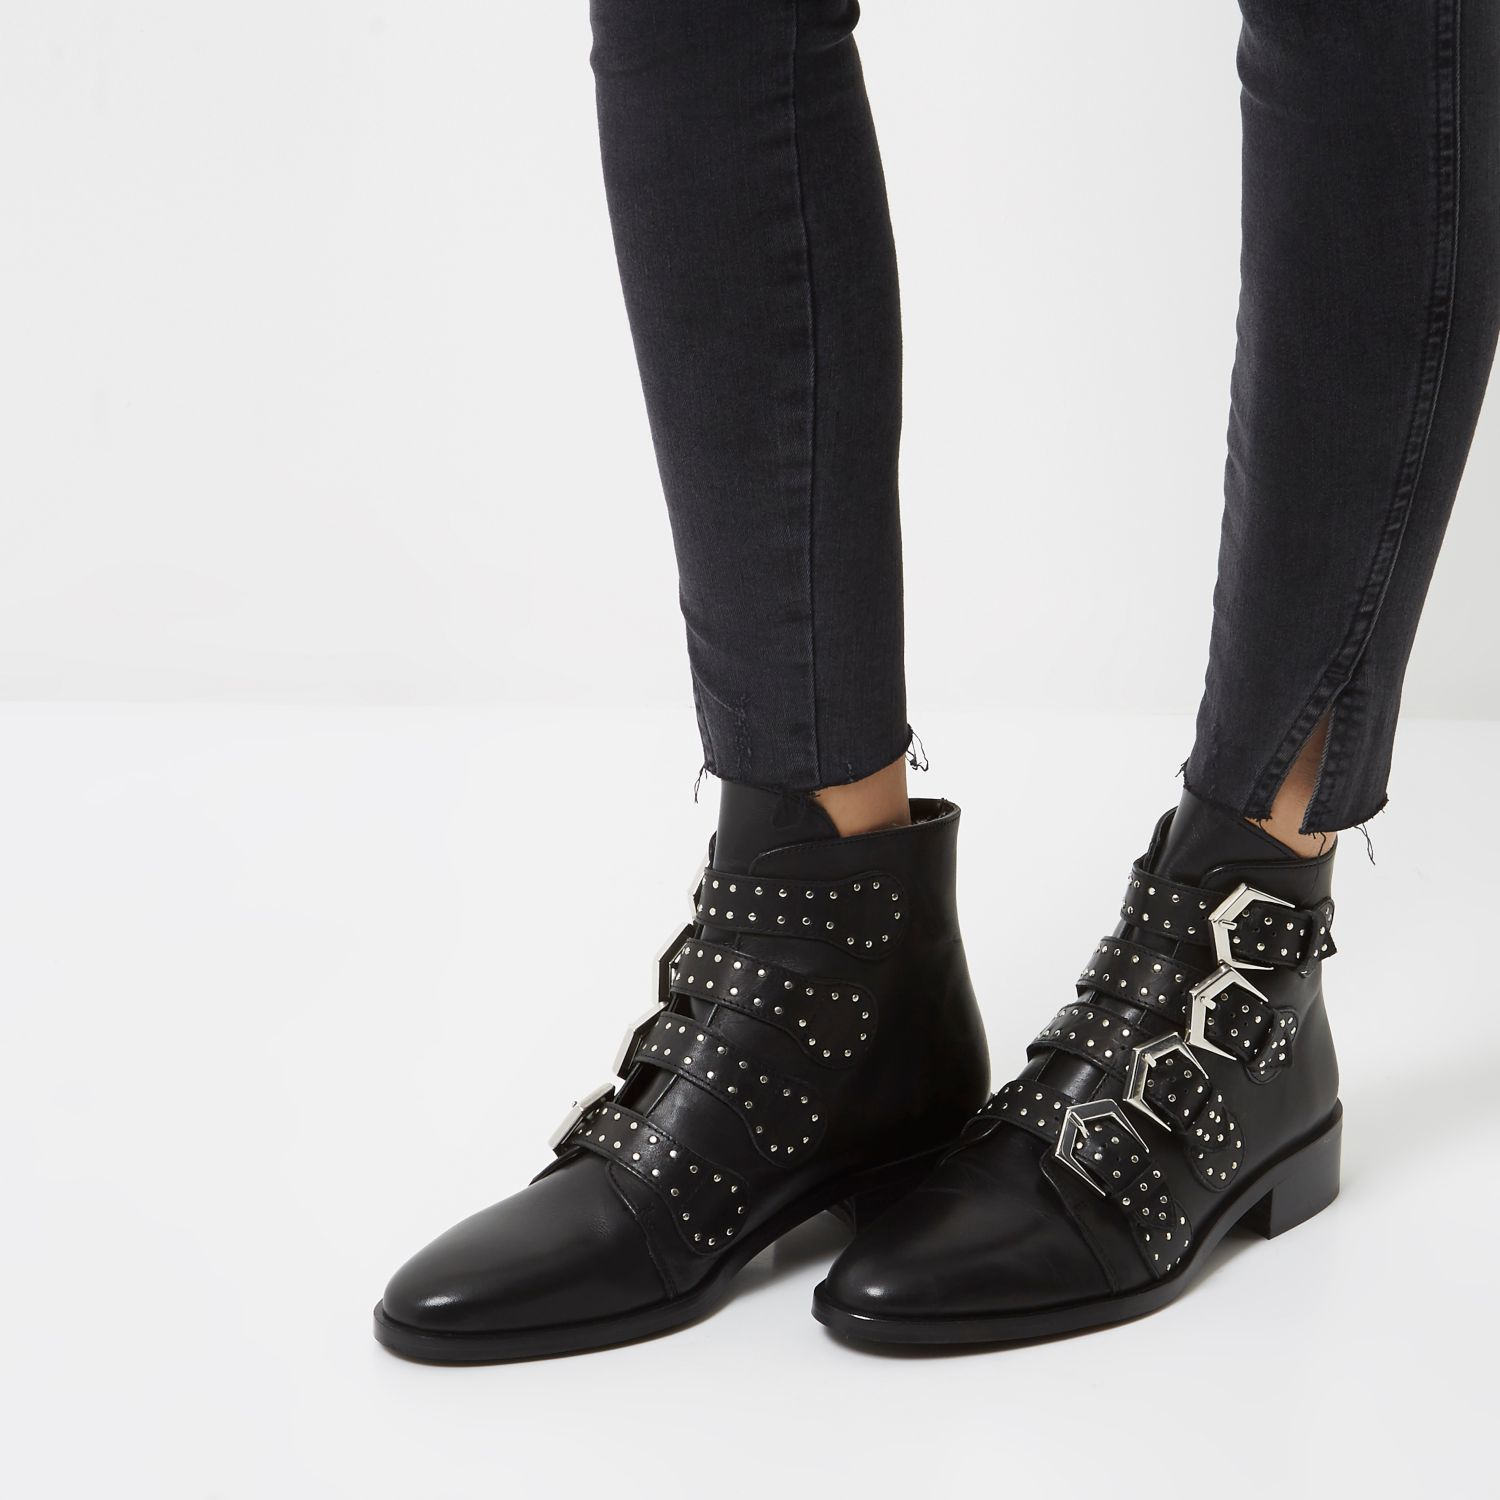 river island black leather stud buckled ankle boots in